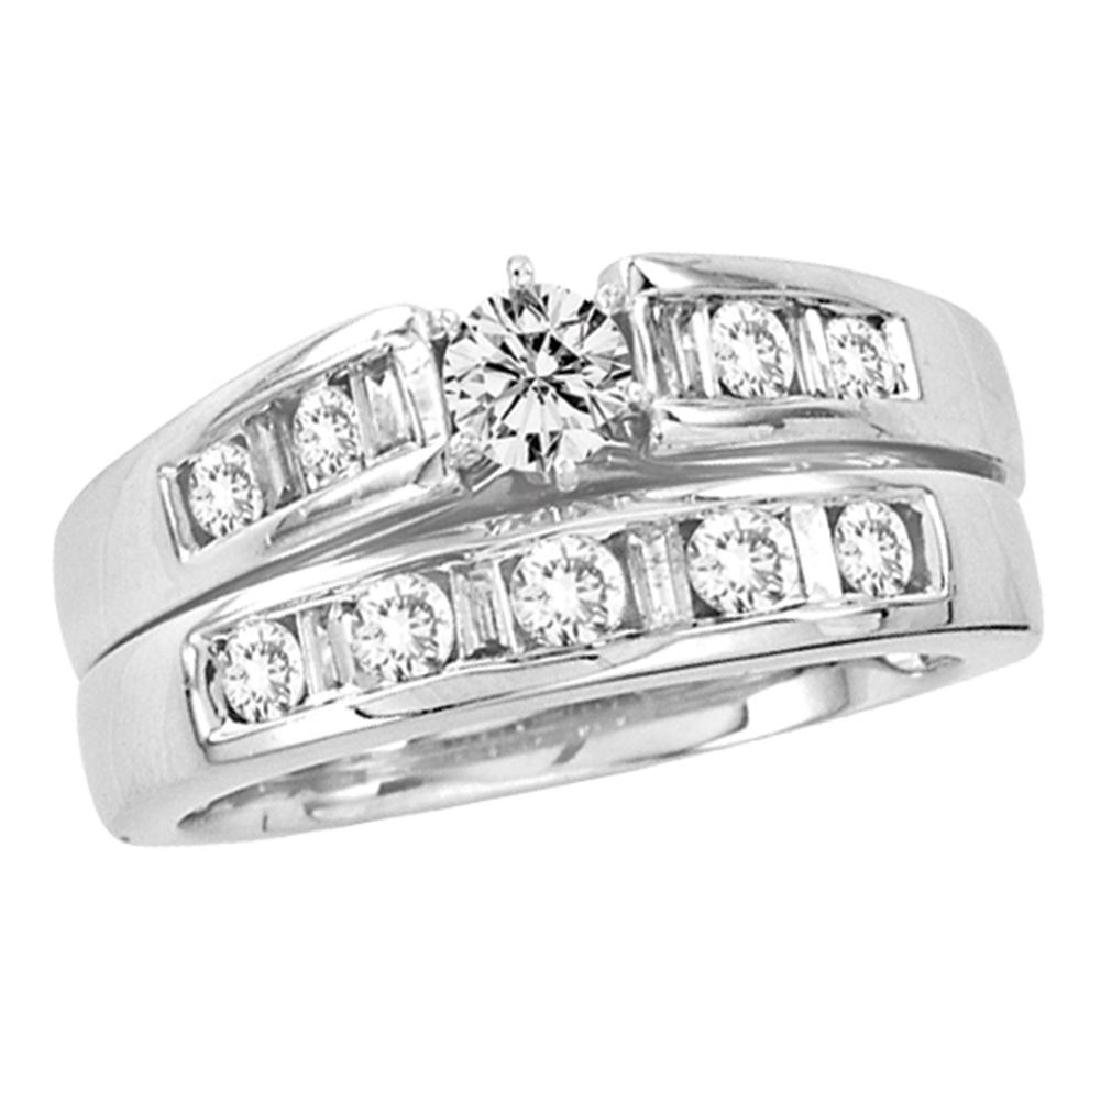 1.01 CTW Diamond Bridal Wedding Engagement Ring 14KT